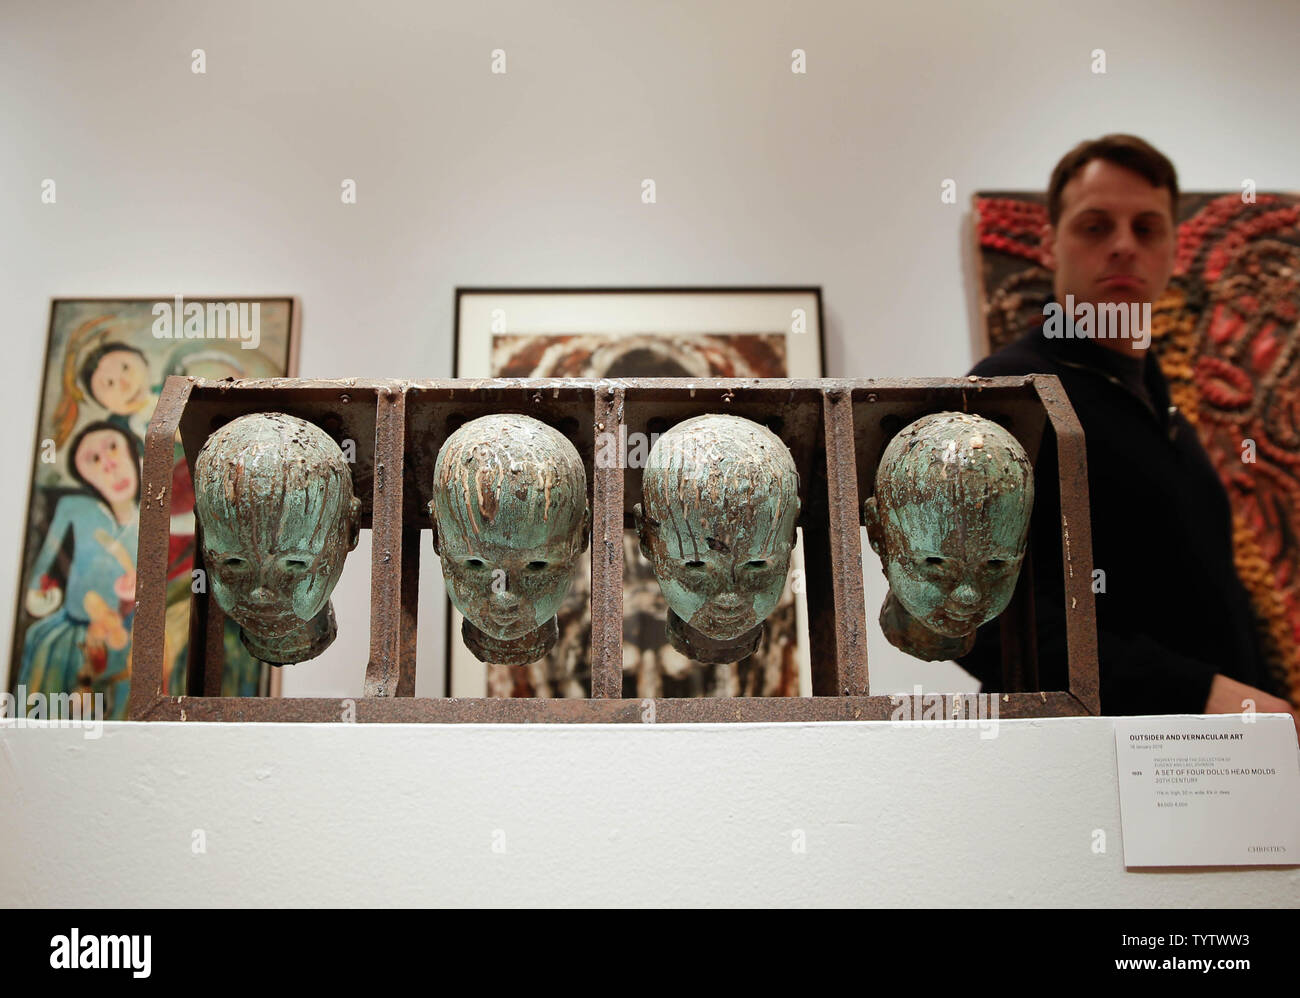 A Set of Four Doll's Head Molds are on display at a press preview of an upcoming auction titled 'Outsider and Vernacular Art' at Christie's in New York City on January 12, 2019. The auction featuring Henry Darger's '148 At Jennie Richee During fury of storm are unsuccessfully attached (sic) by Glandelinians / 149 At Jennie Richee narrowly escape capture but Blengins come to rescue, double sided' , estd $250,000 - $500,000 and Bill Traylor's 'Goat, Camel, Lion and Figures', estd $75,000 - $100,000 takes place at Christie's on January 18th.     Photo by John Angelillo/UPI - Stock Image